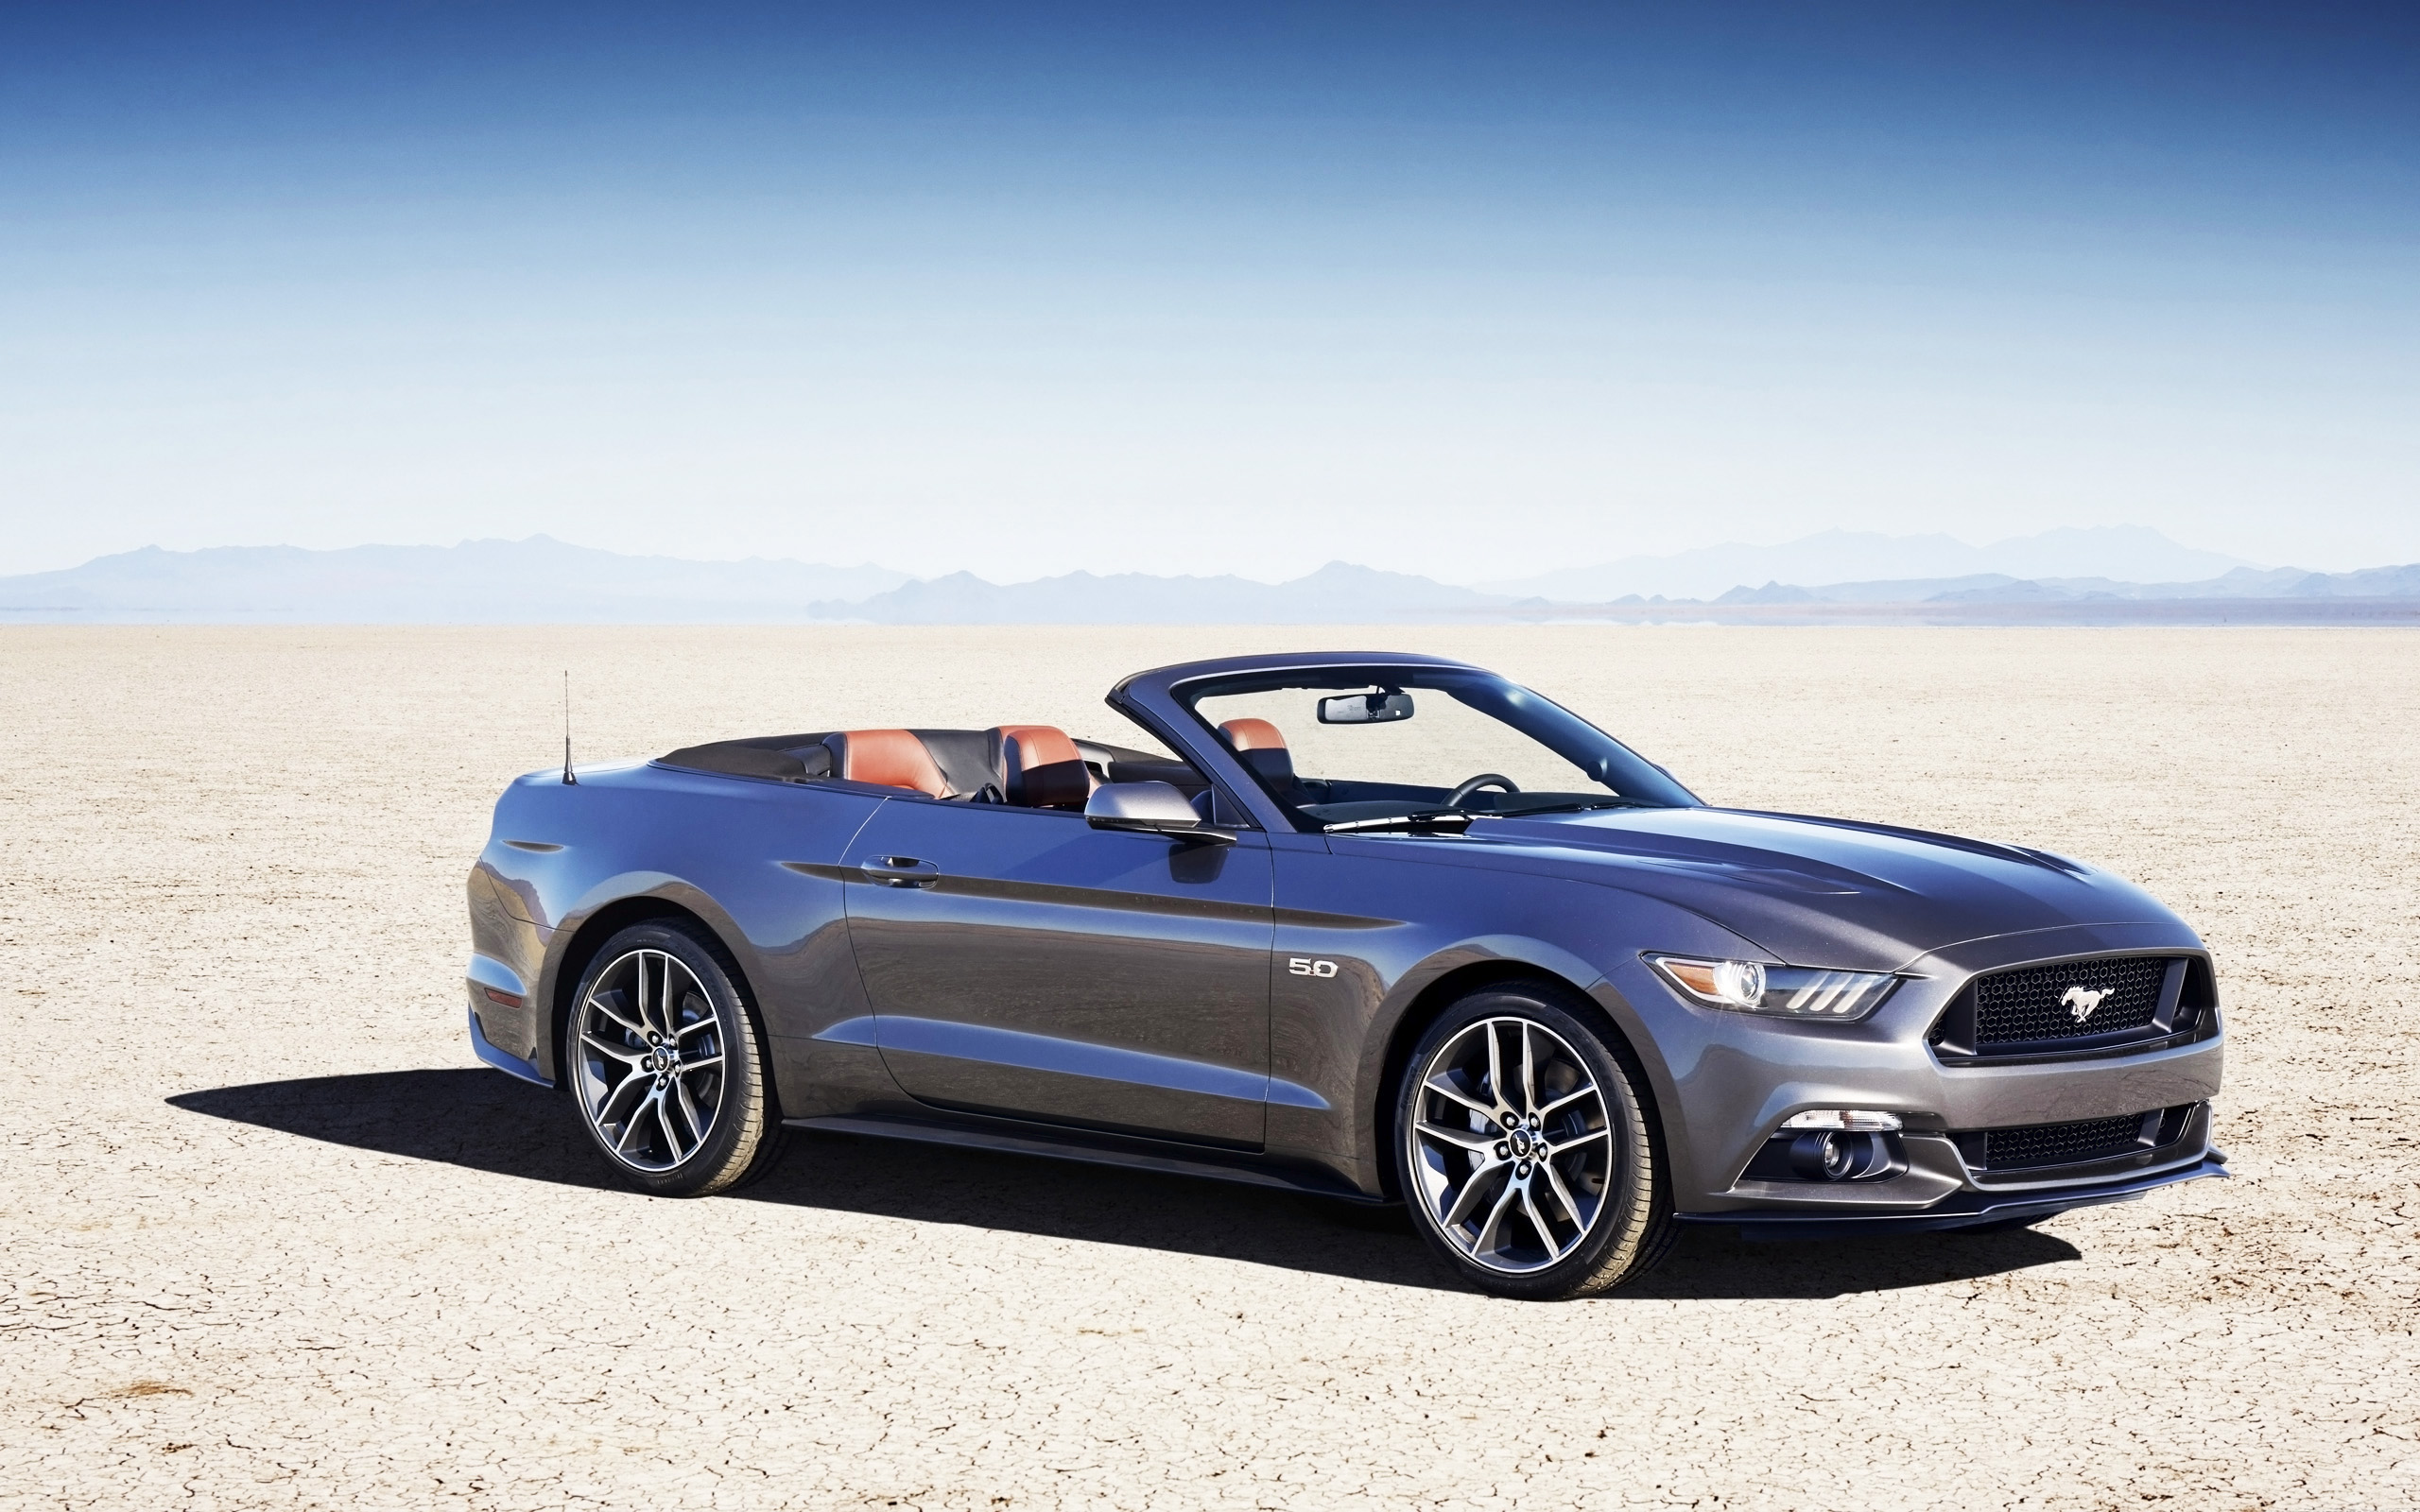 2015 ford mustang convertible wallpaper hd car wallpapers id 4511. Black Bedroom Furniture Sets. Home Design Ideas